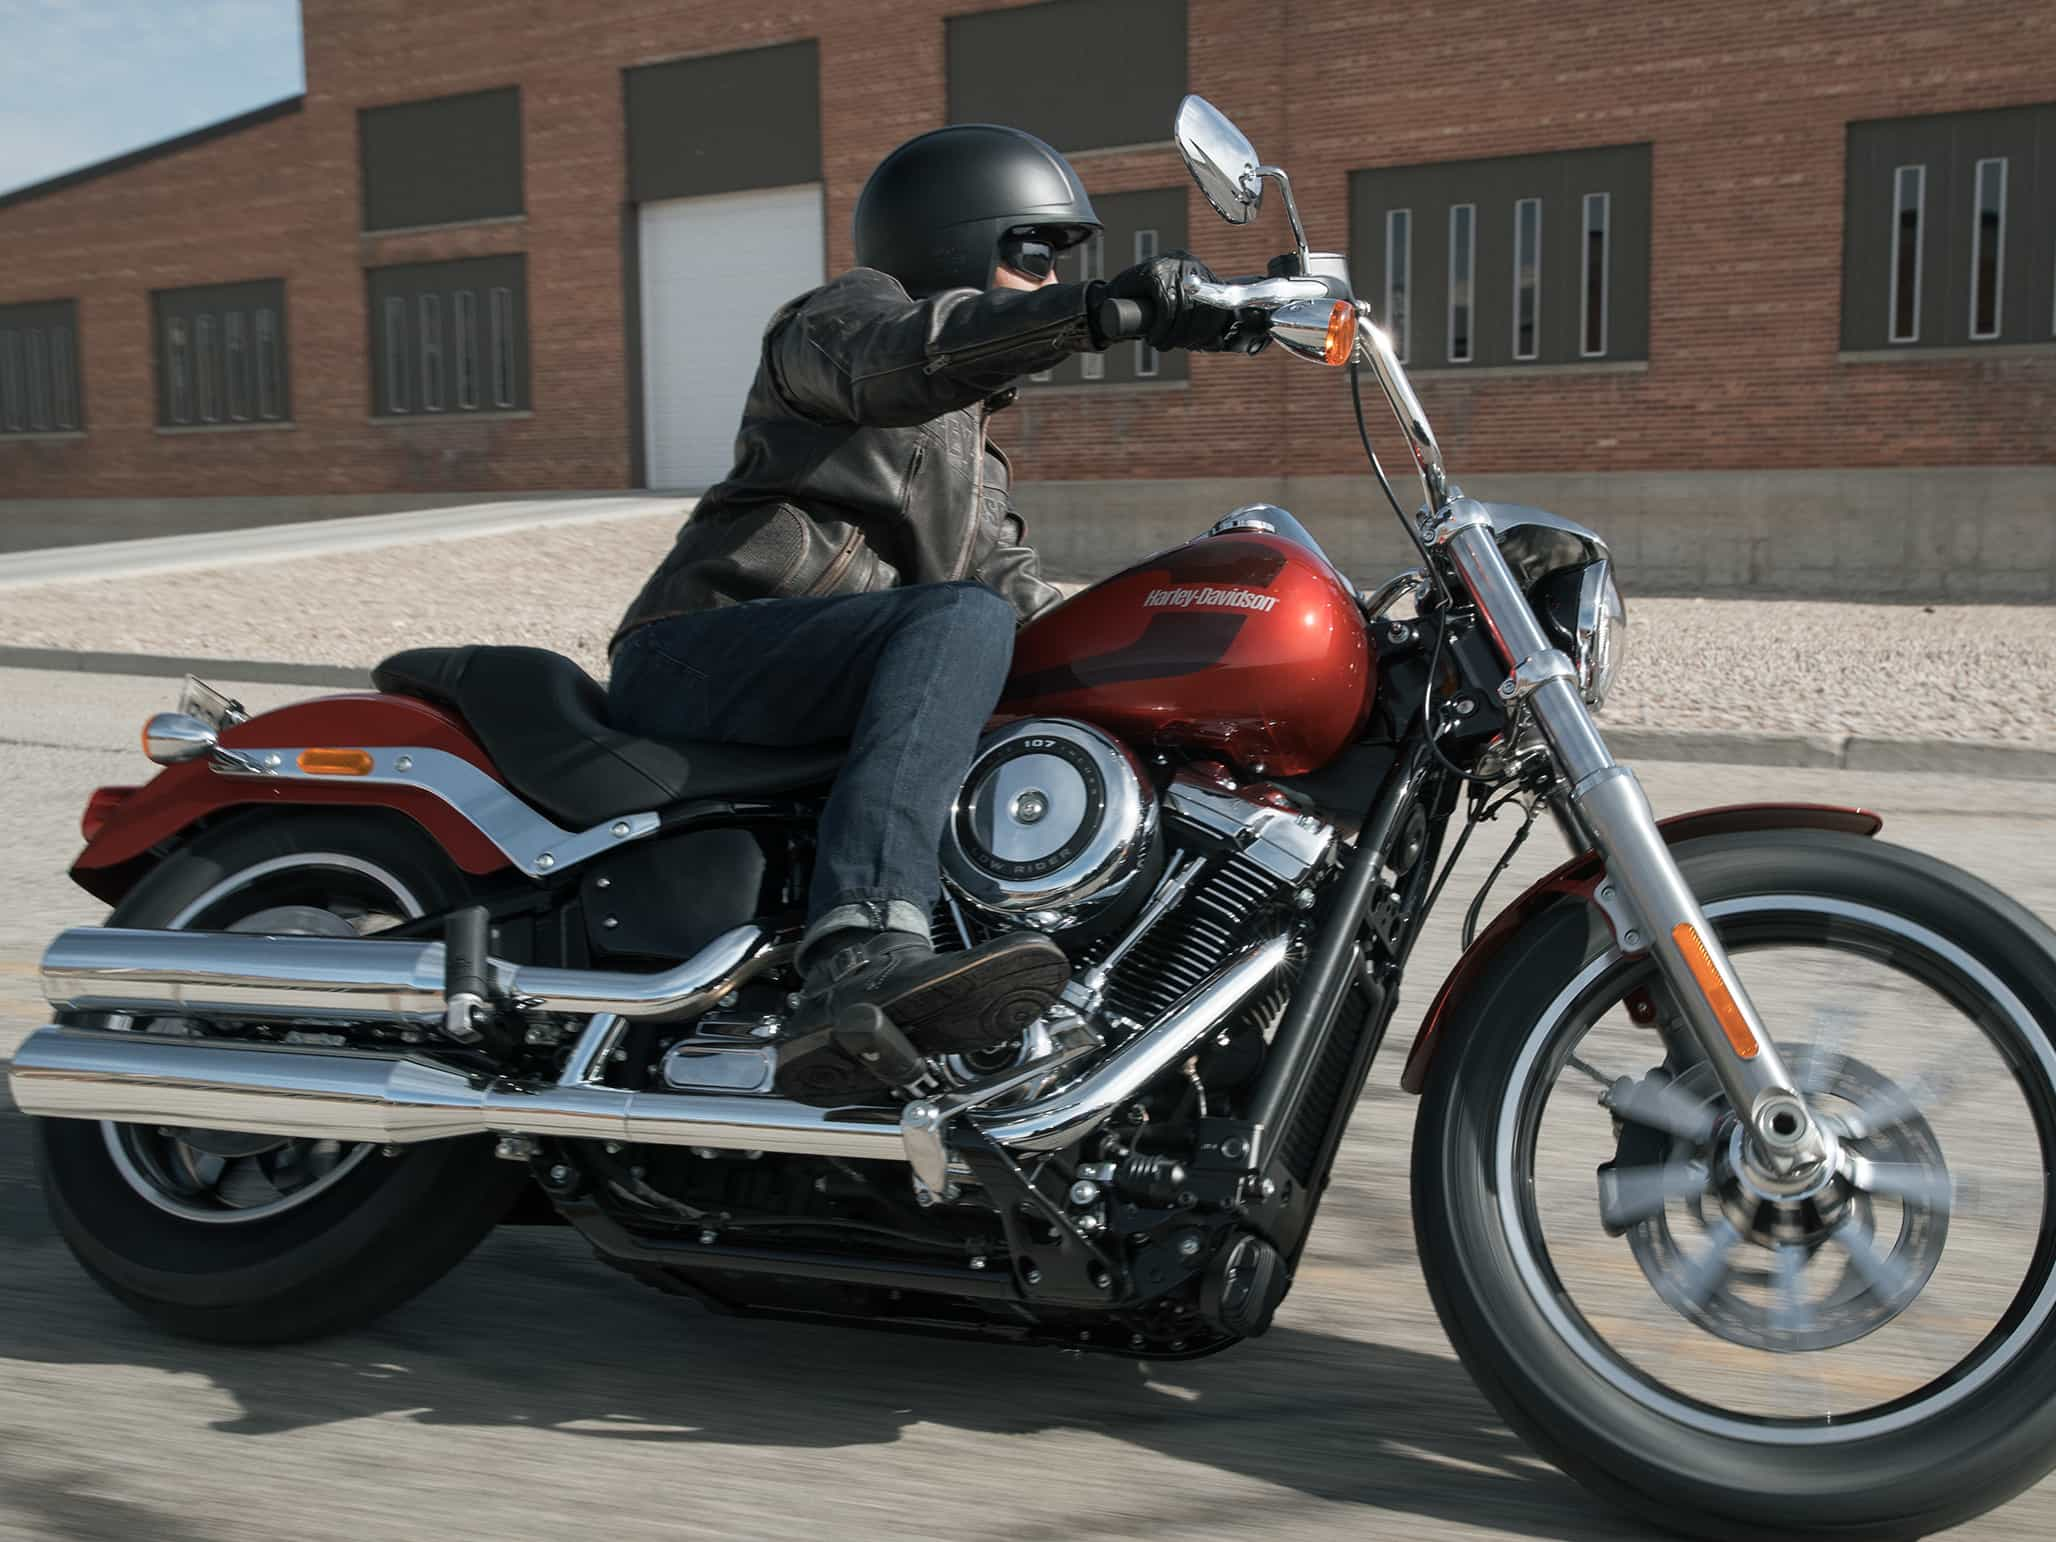 2018 Low Rider | Harley-Davidson USA